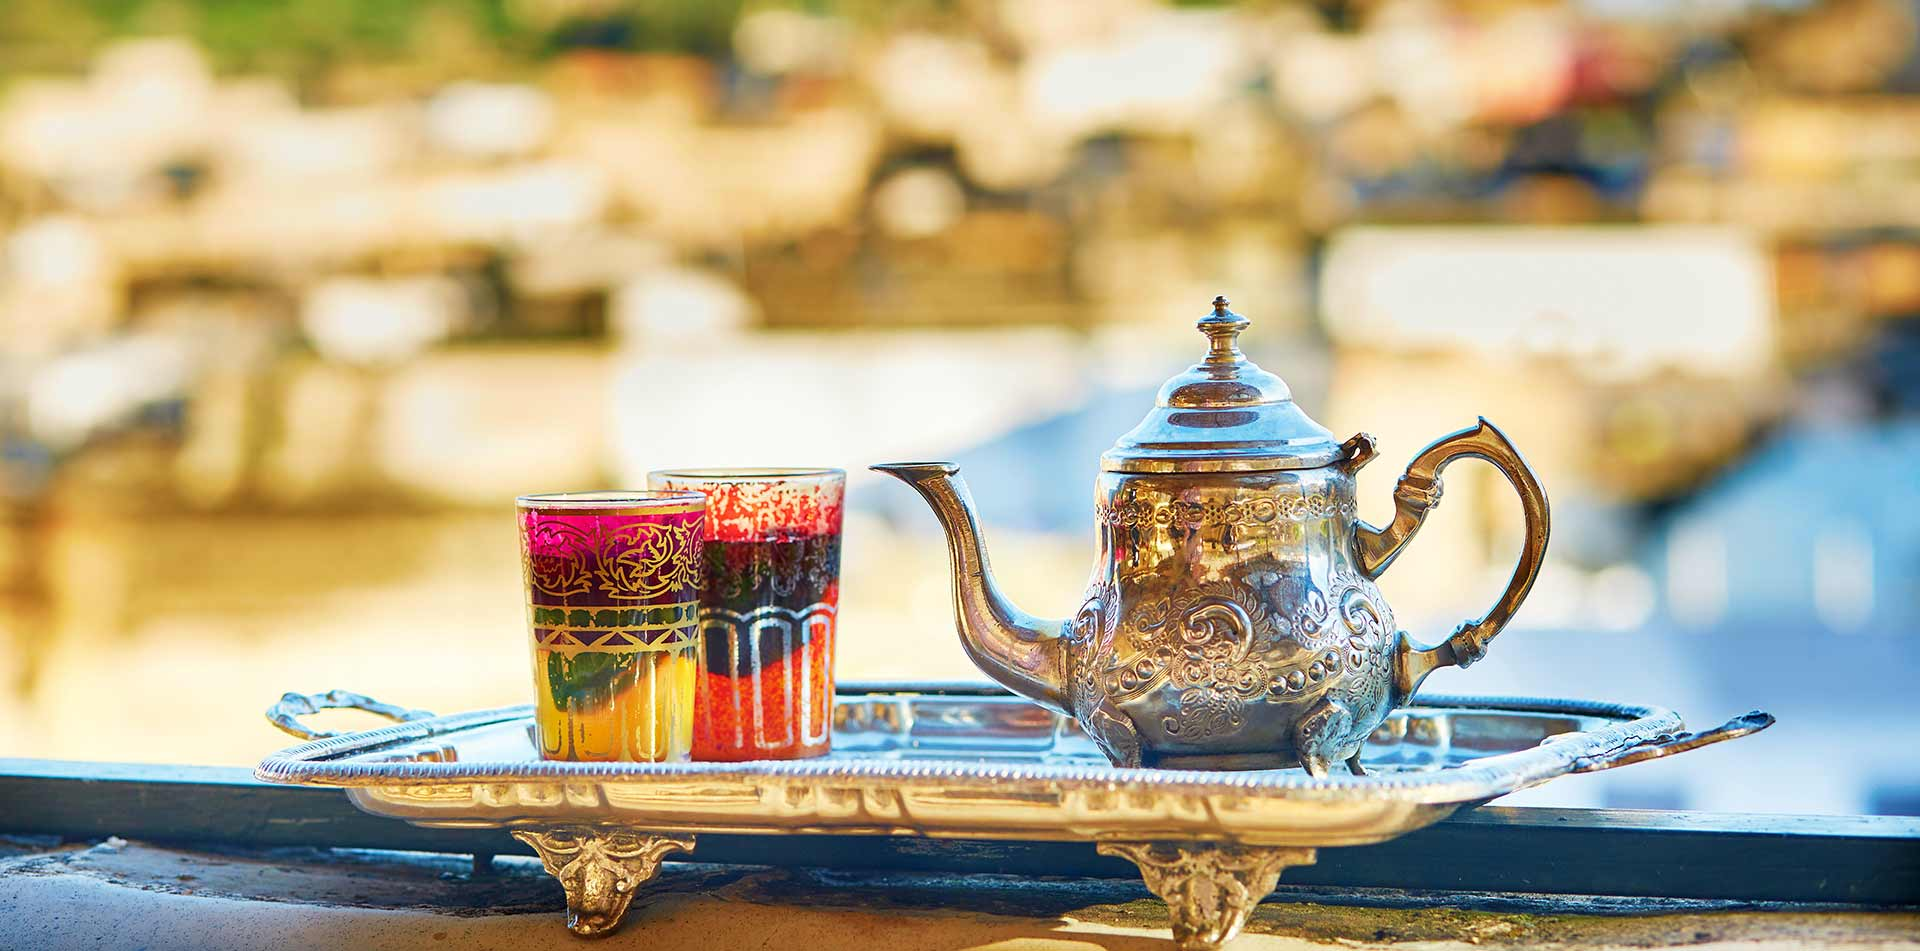 Moroccan tea set, Morocco